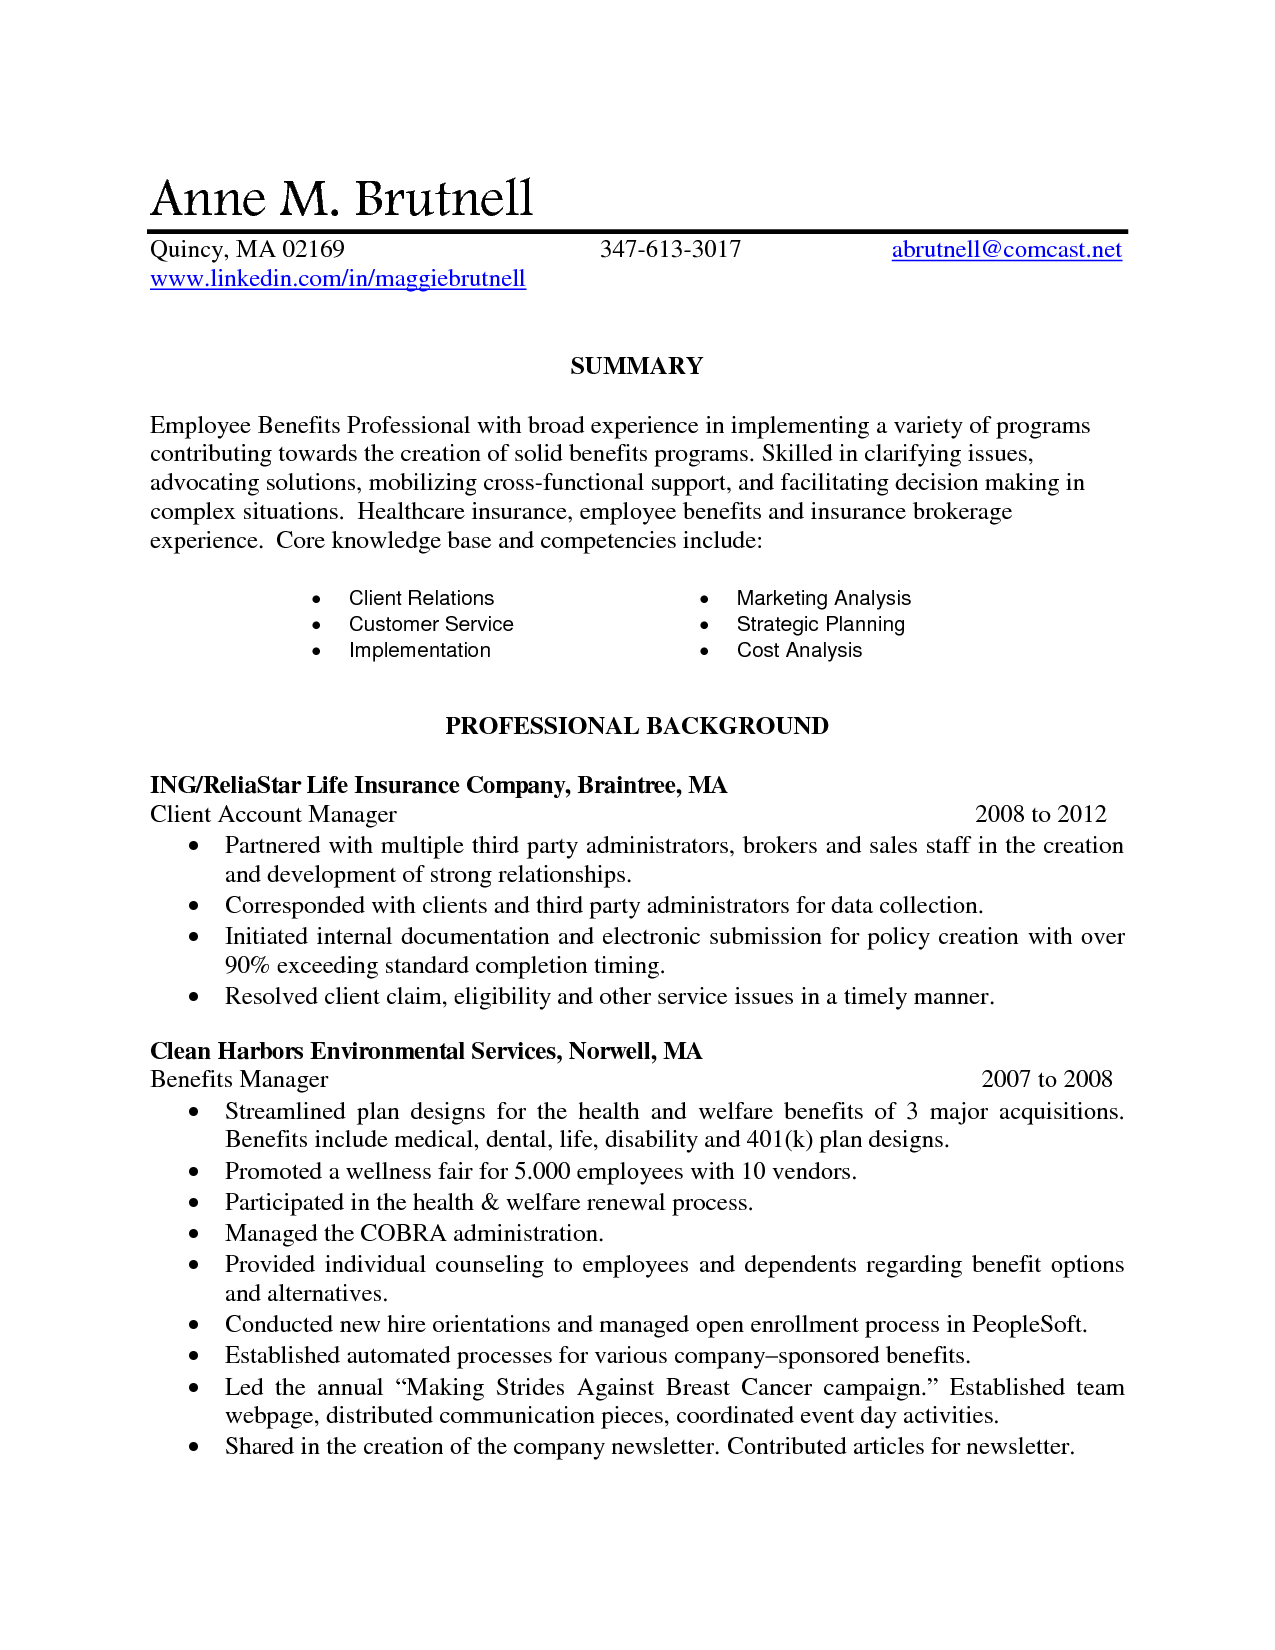 Account Manager Resume Benefits Account Manager Resume  Benefits Account Service